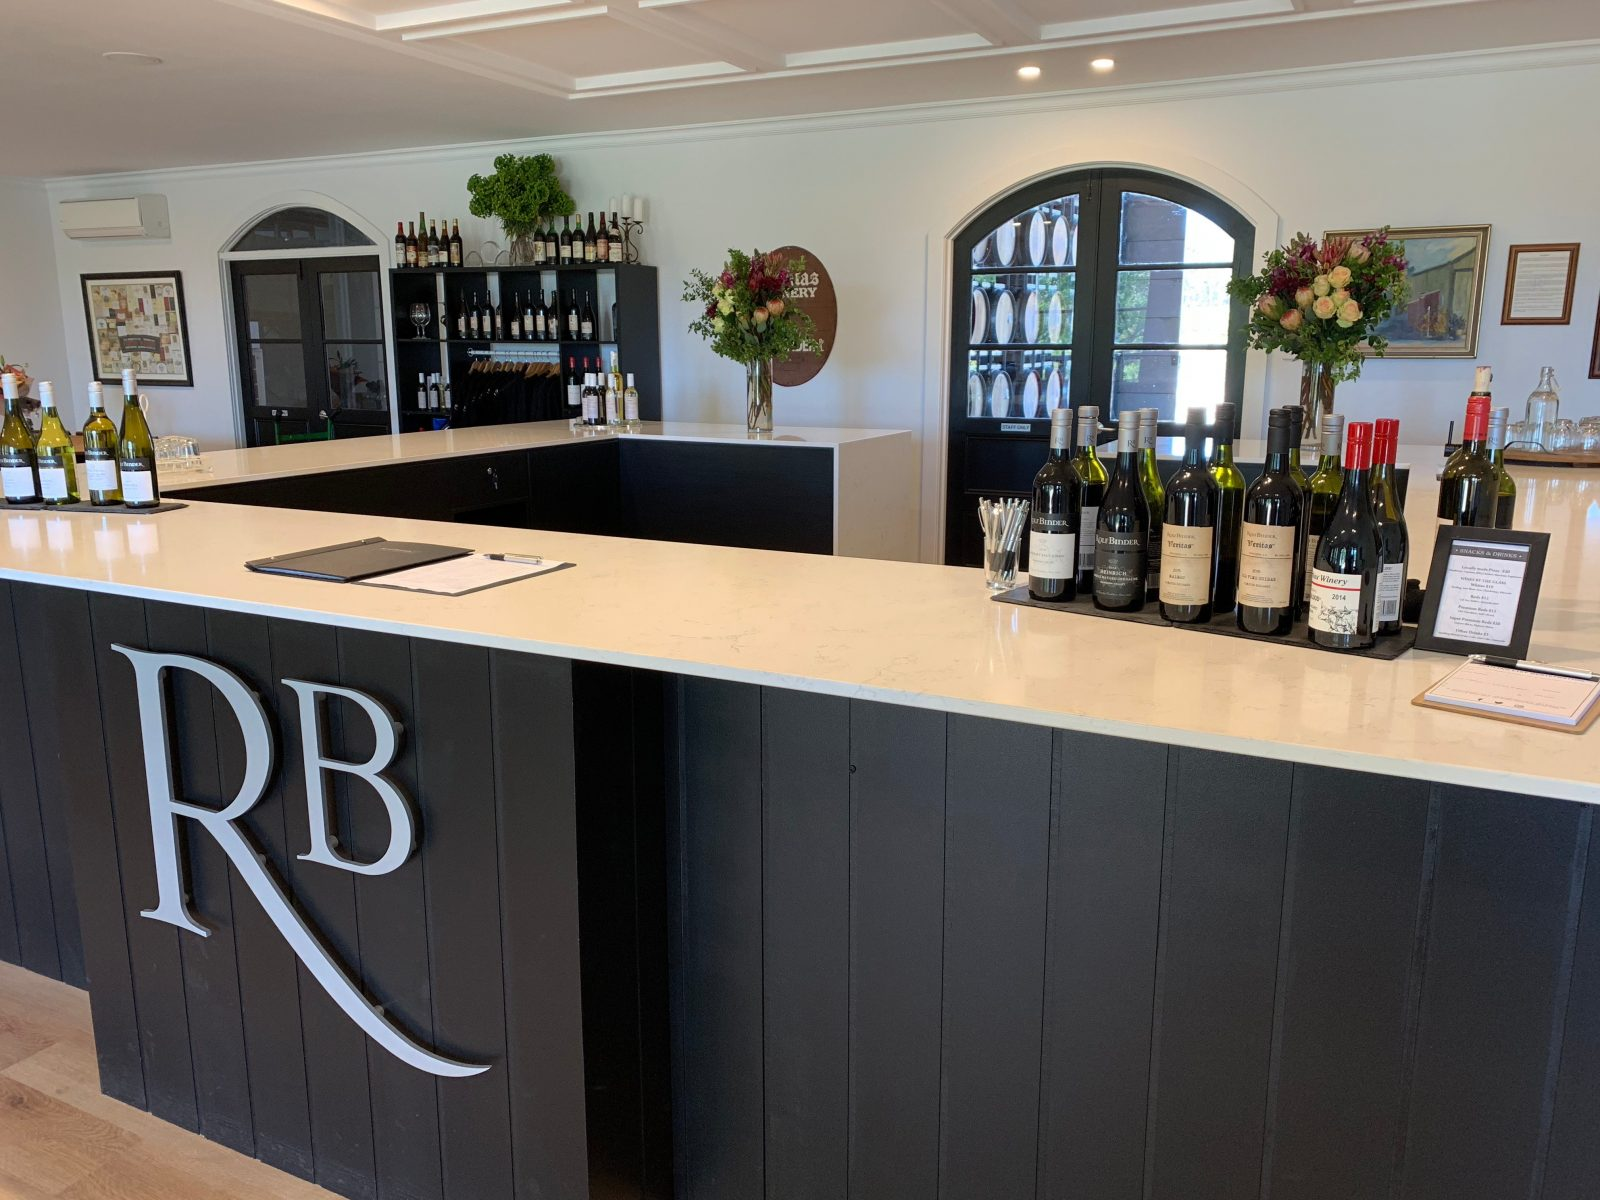 Enjoy tasting the entire range of Rolf Binder wines over the Australia Day long weekend.